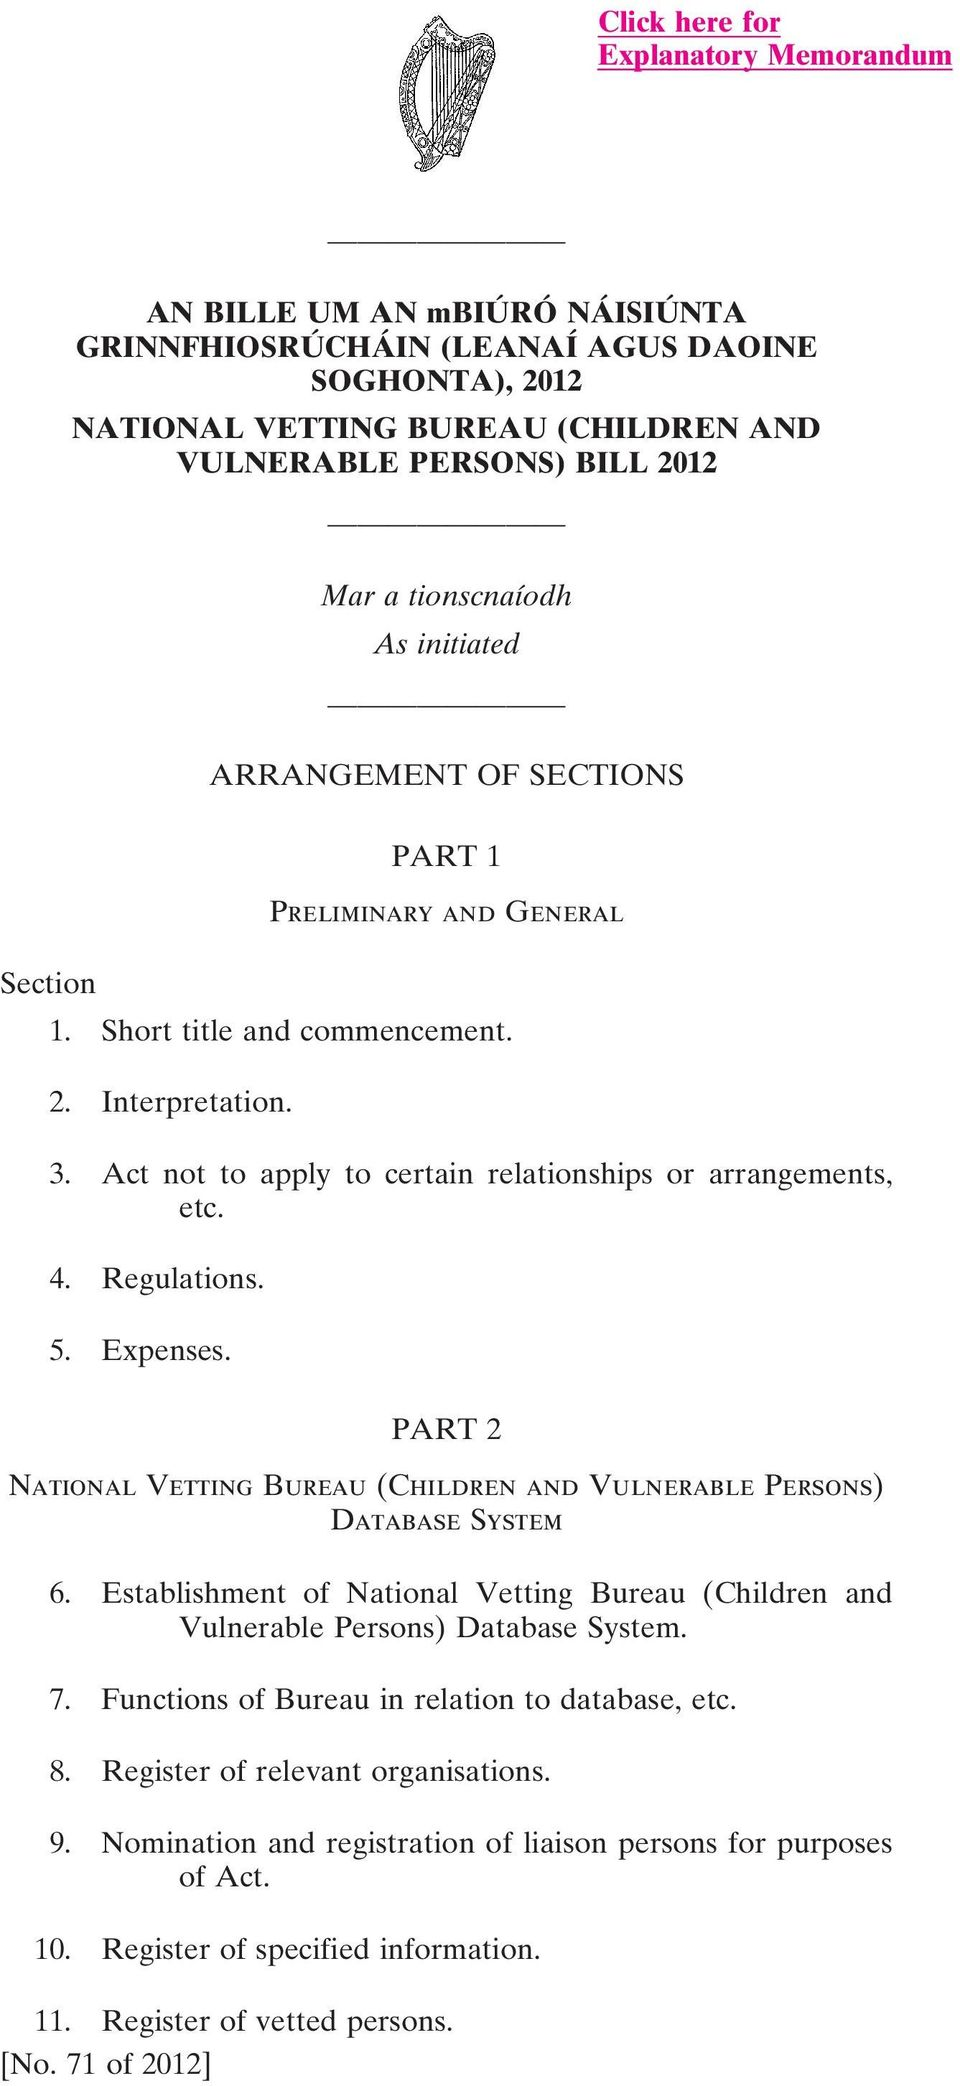 Act not to apply to certain relationships or arrangements, etc. 4. Regulations. 5. Expenses. PART 2 National Vetting Bureau (Children and Vulnerable Persons) Database System 6.